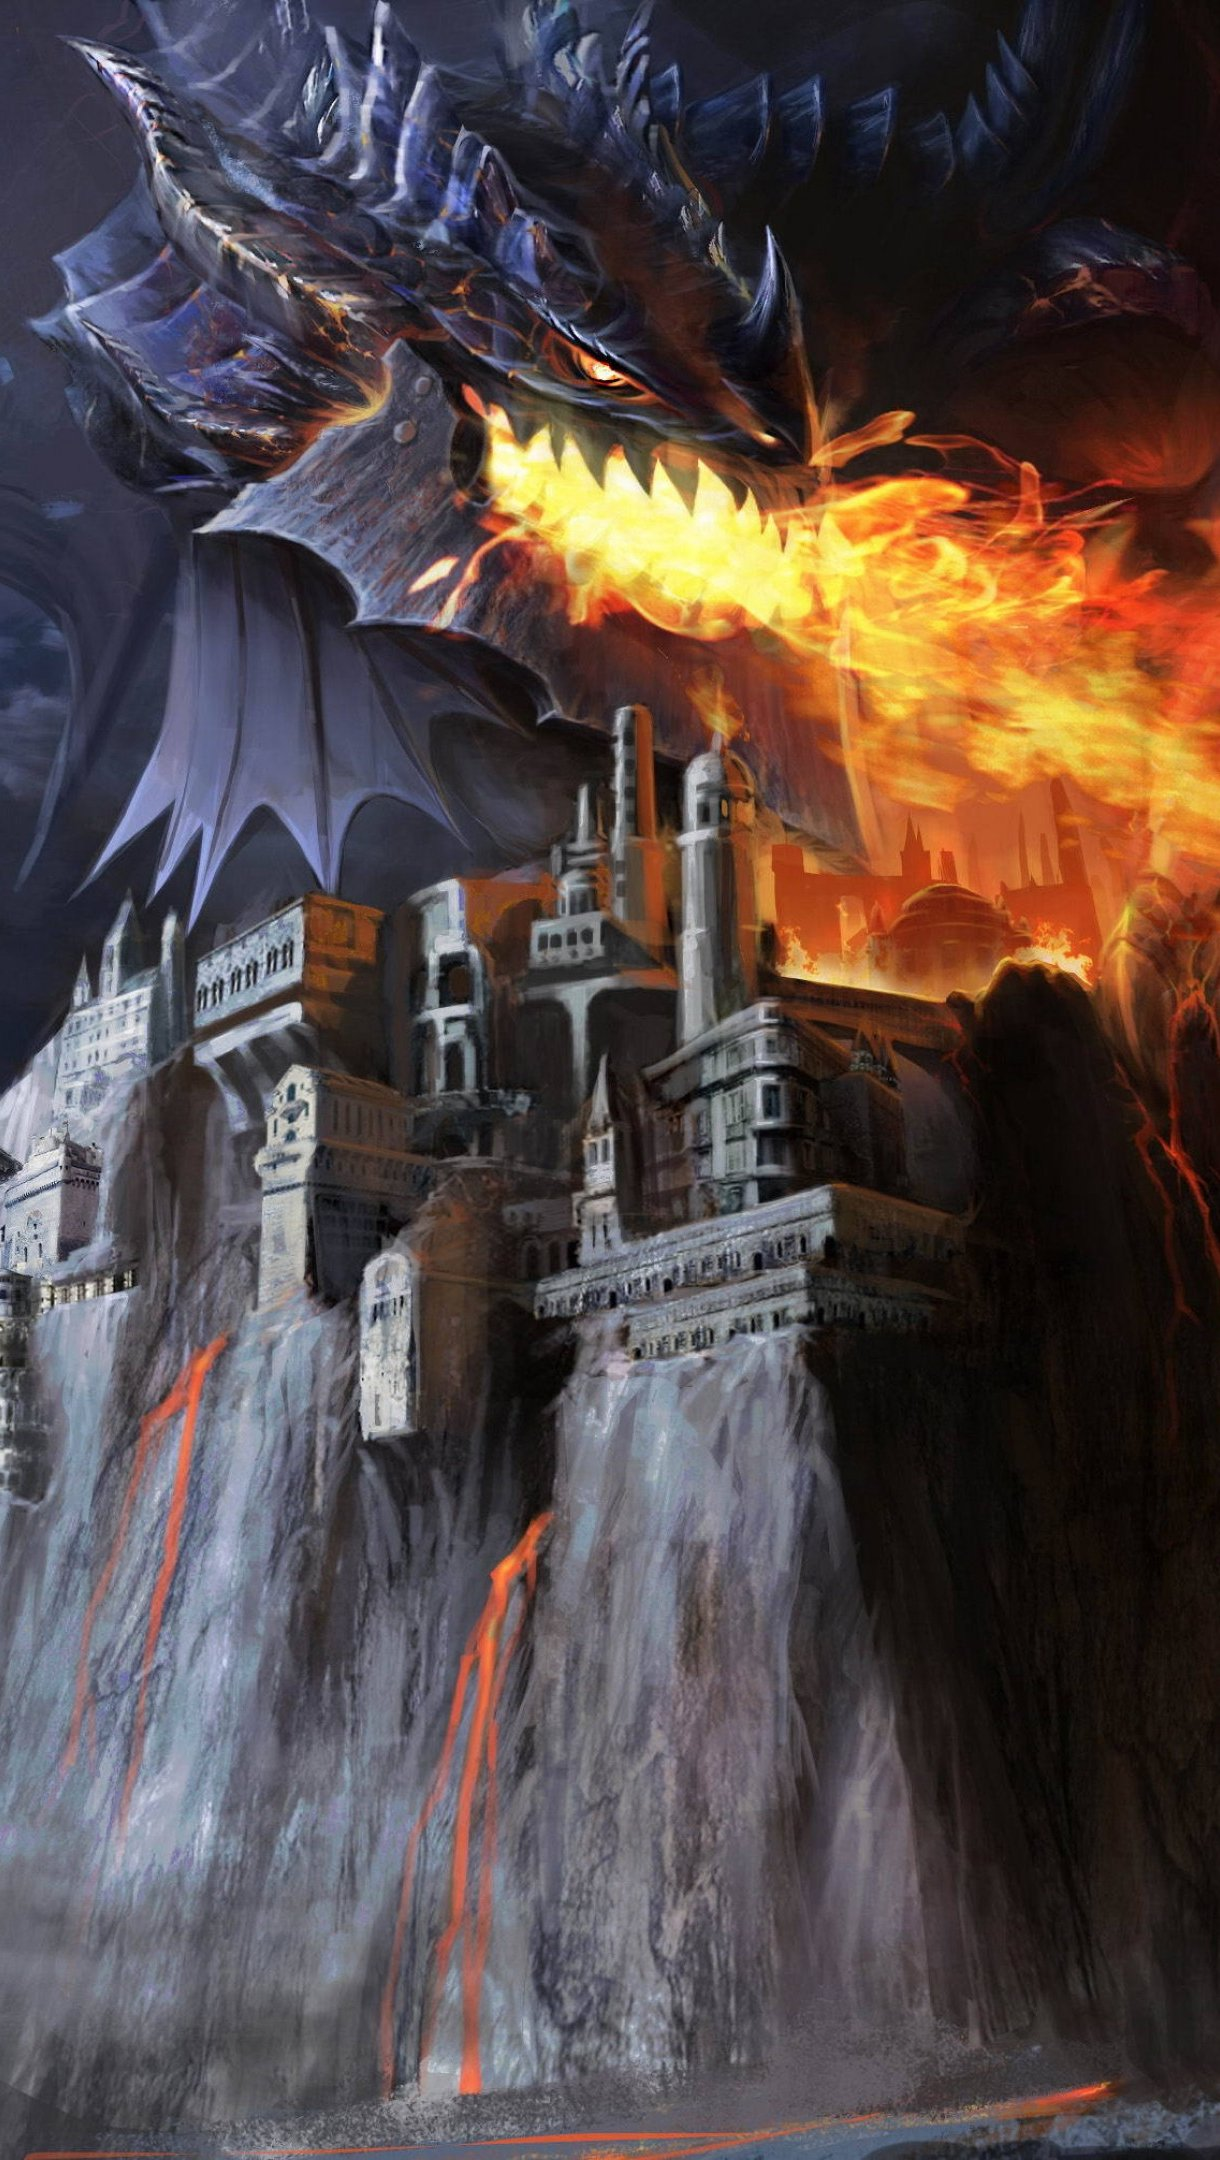 Wallpaper Dragon attacking castle Vertical